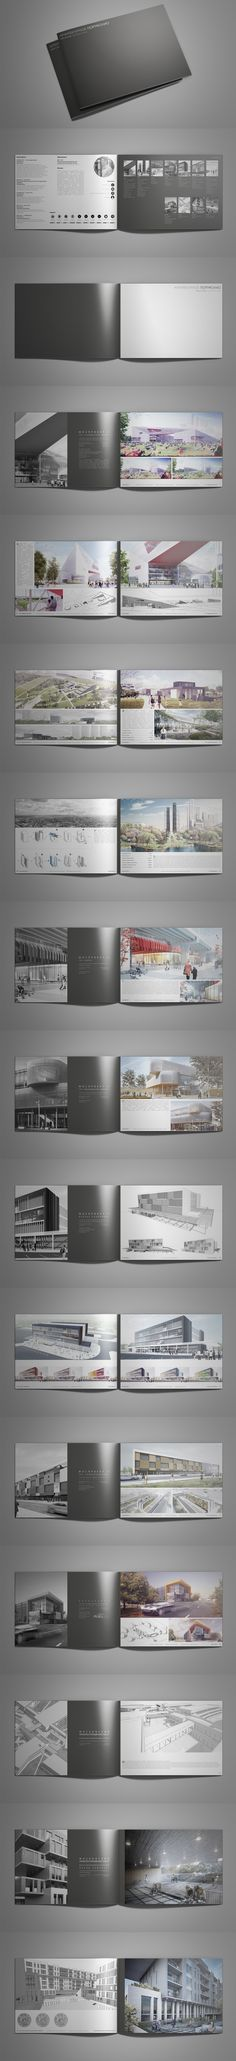 """Architecture Portfolio   SEE: https://www.pinterest.com/pin/368943394464234174/   Re Chicks: https://www.pinterest.com/pin/368943394464160063/   Unaware   Understand   Technicality: http://www.shmula.com/turnaround-and-change-management-do-not-waste-a-good-crisis/1466/   remarks: """"such gamer mistress of Russia diverts away from foo strTeino whom has duty free tariff liability with the US. So happen I could have found about and upload Git software without a reference"""" #architectureportfolio"""